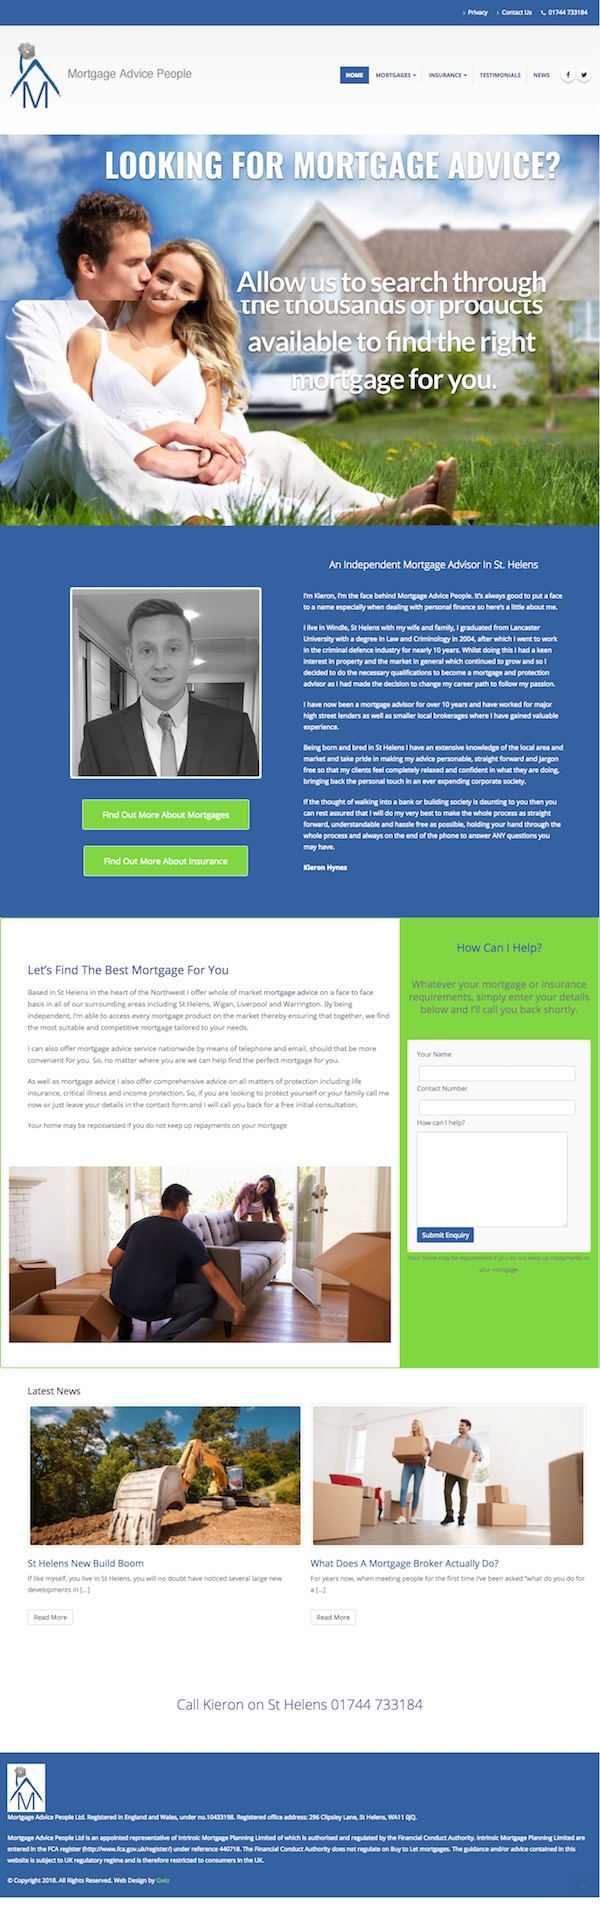 Web design for mortgage advisor St Helens